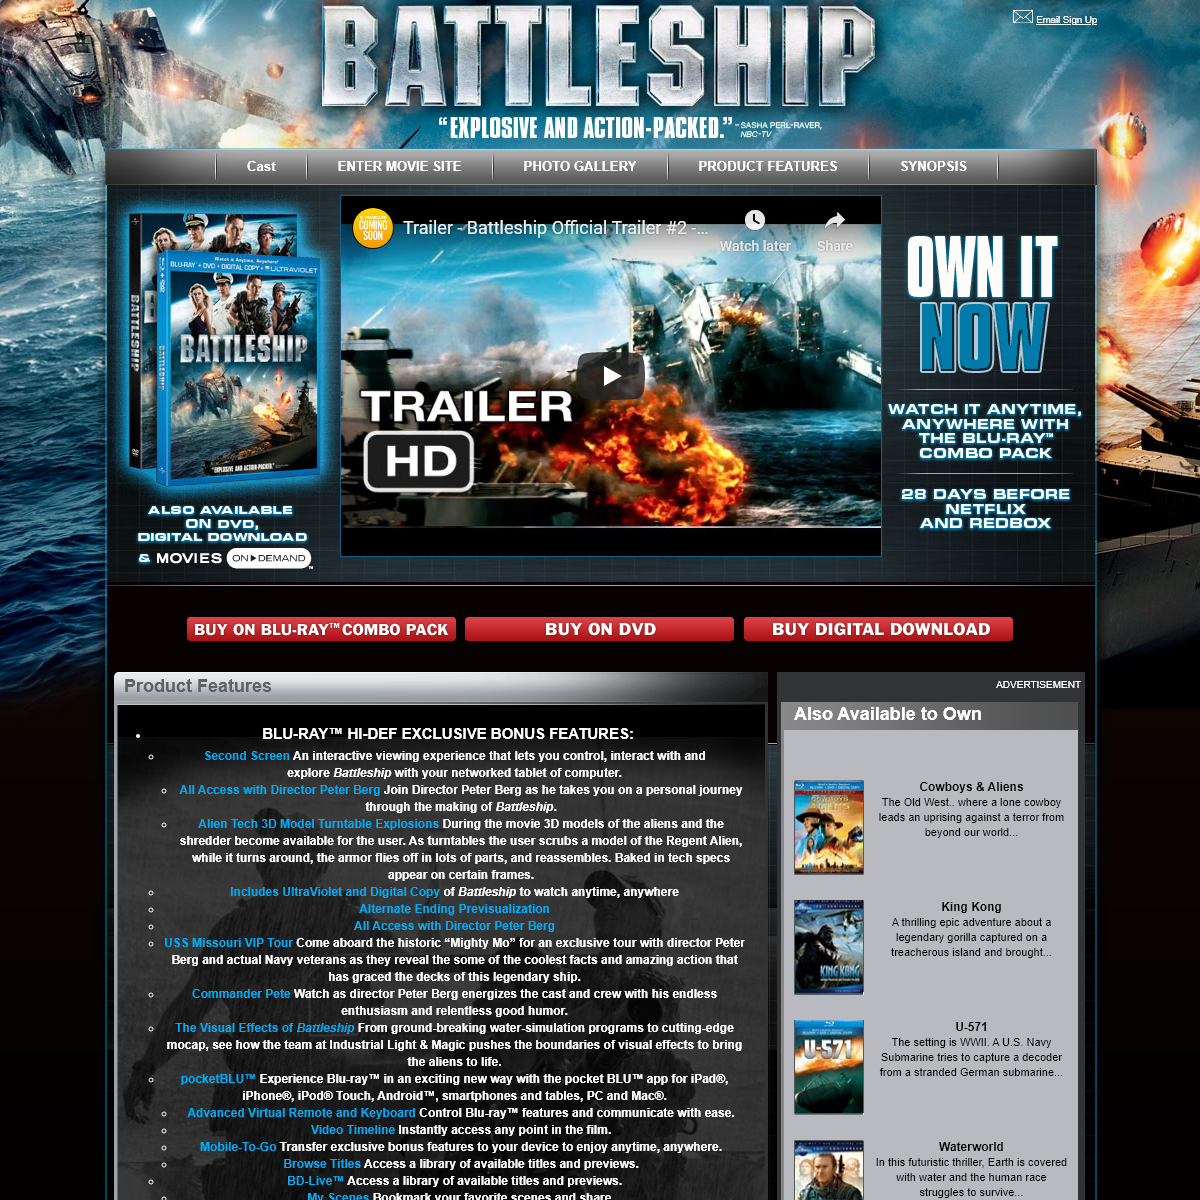 Battleship Movie - Official Site for Battleship - Watch The DVD Trailer, Photos & Pictures, Story, Plot & Previews